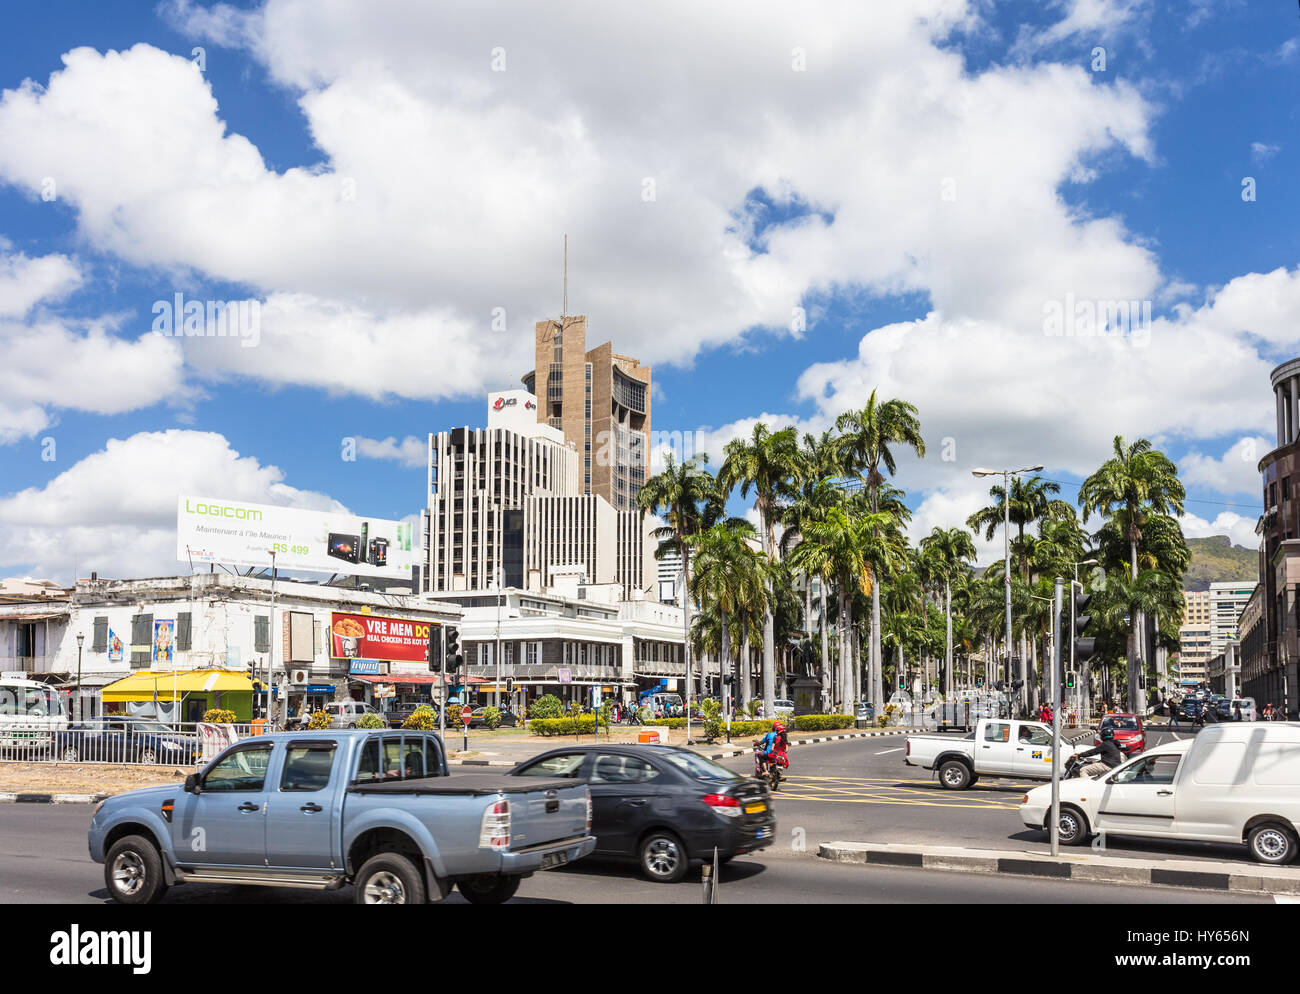 PORT LOUIS, MAURITIUS - NOVEMBER 18, 2016: Cars drive in the modern business center of Port Louis, Mauritius capital Stock Photo